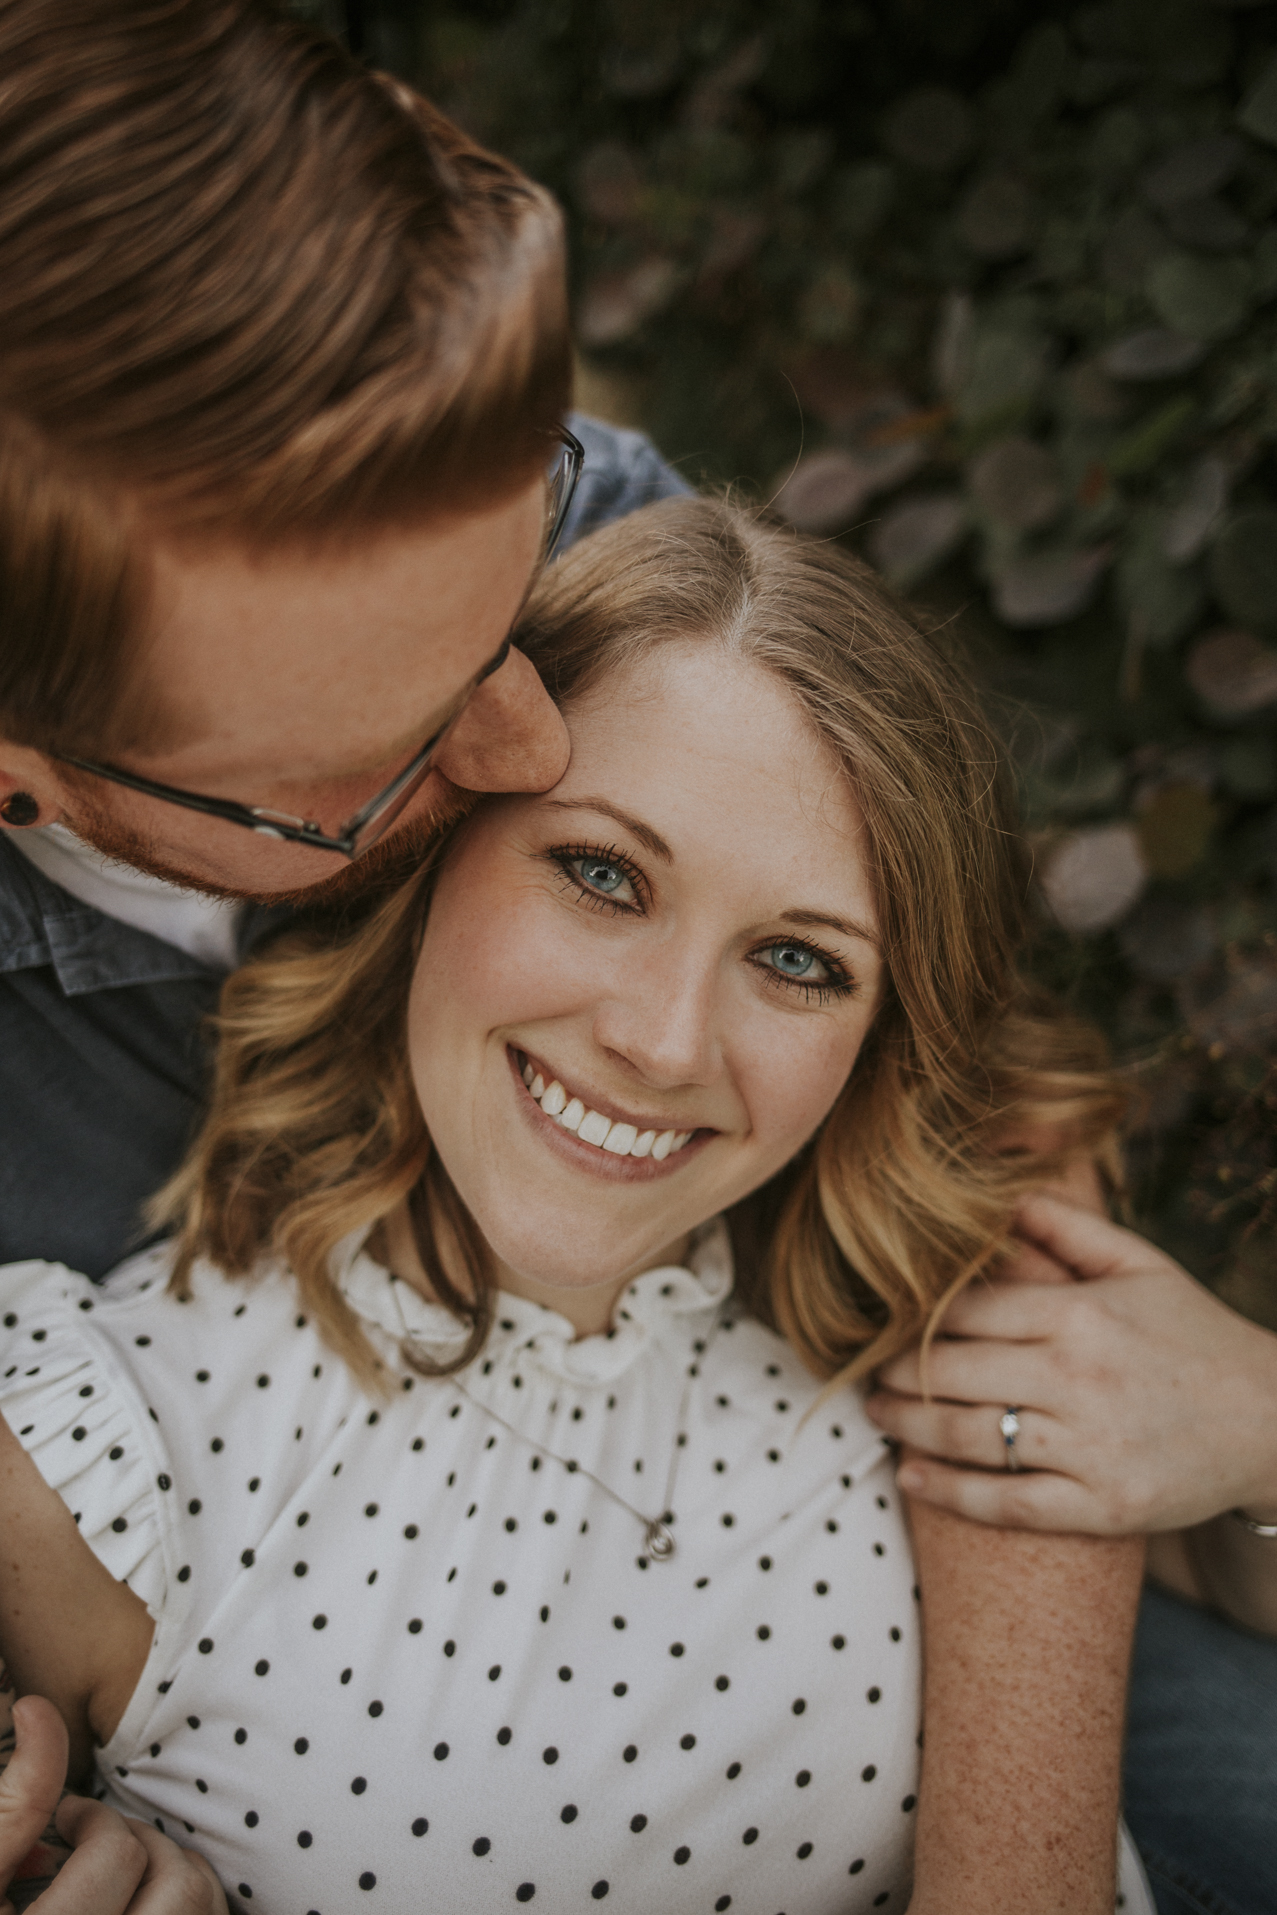 Krohn Conservatory Engagement Session Photography Overlooking the Ohio River